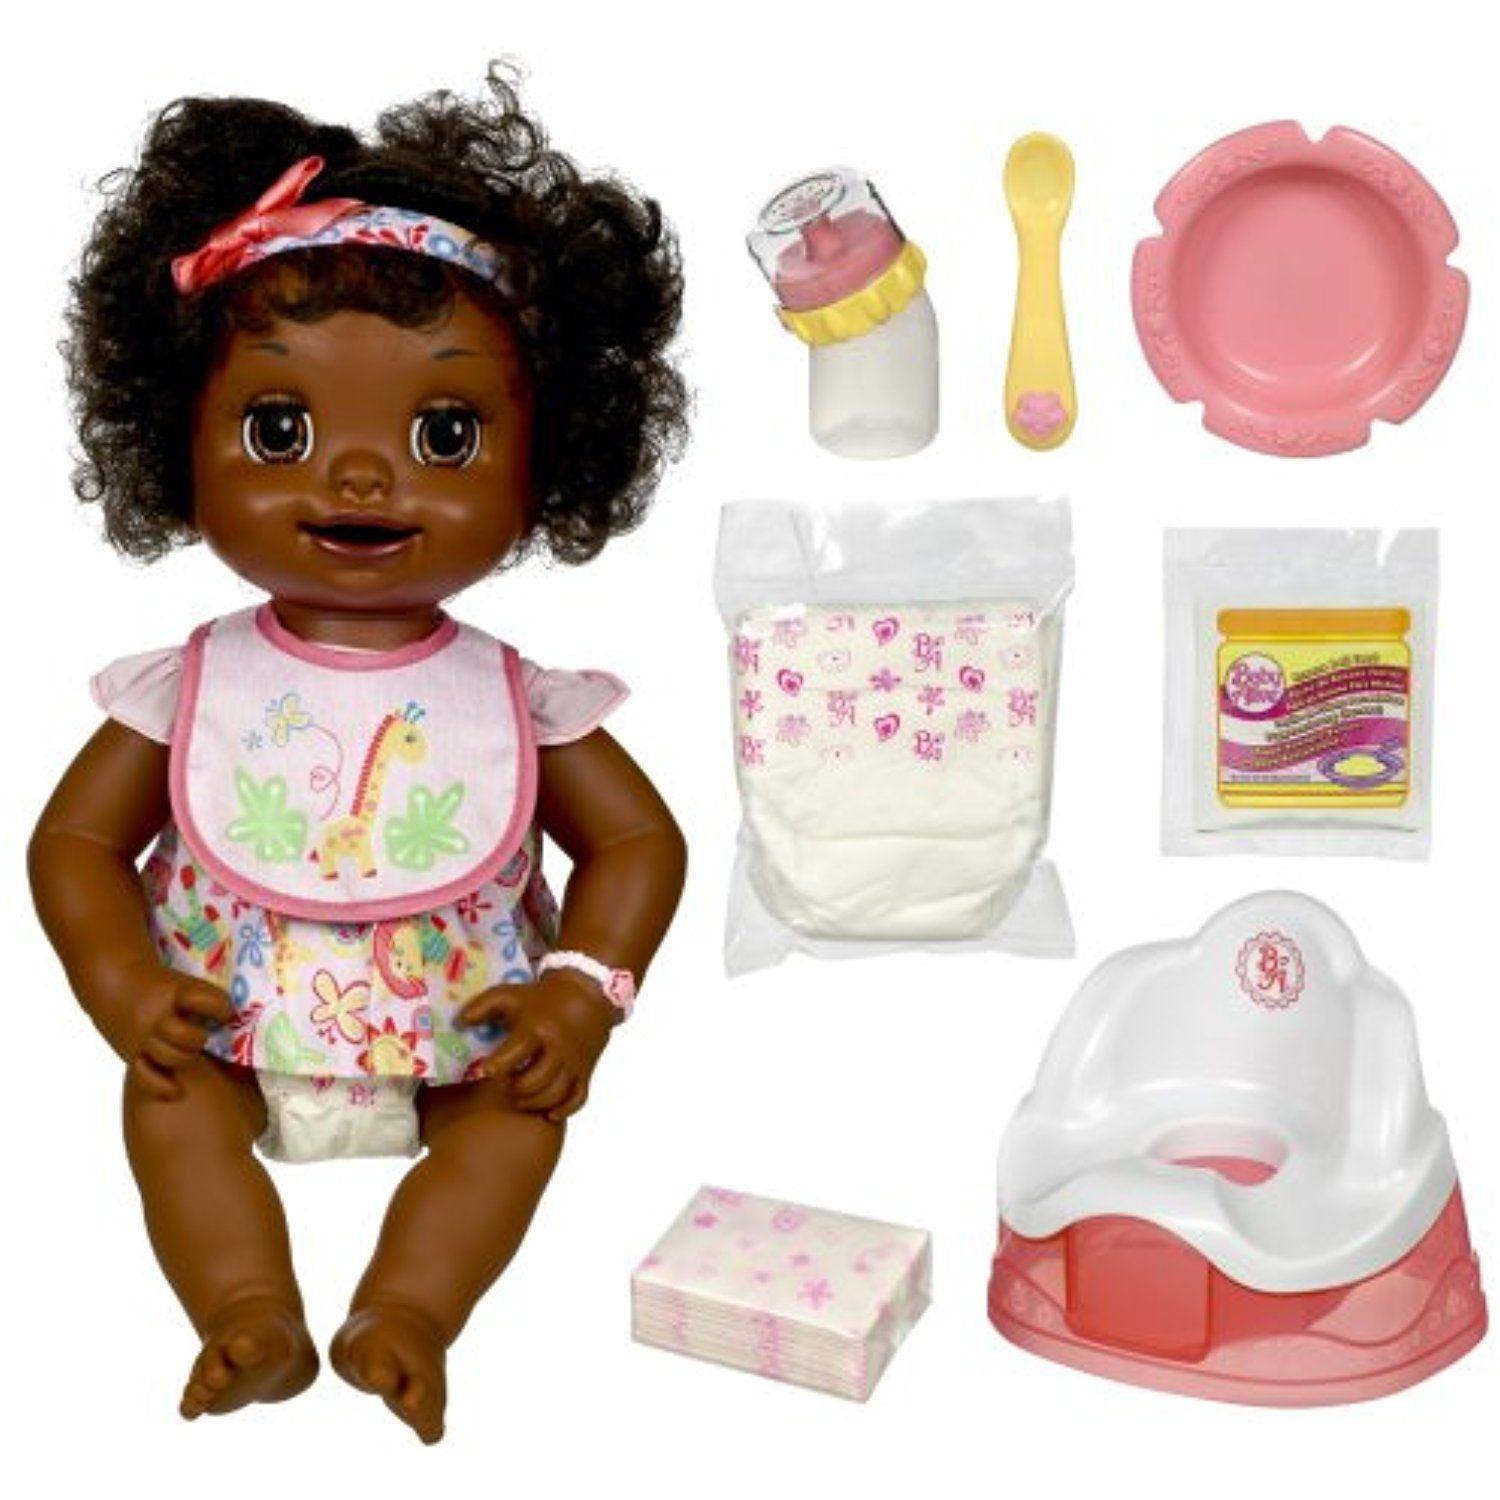 Baby Alive African American Learns To Potty You Can Find Out More Details At The Link Of The Image Thi Best Baby Doll Fake Baby Dolls Baby Doll Accessories